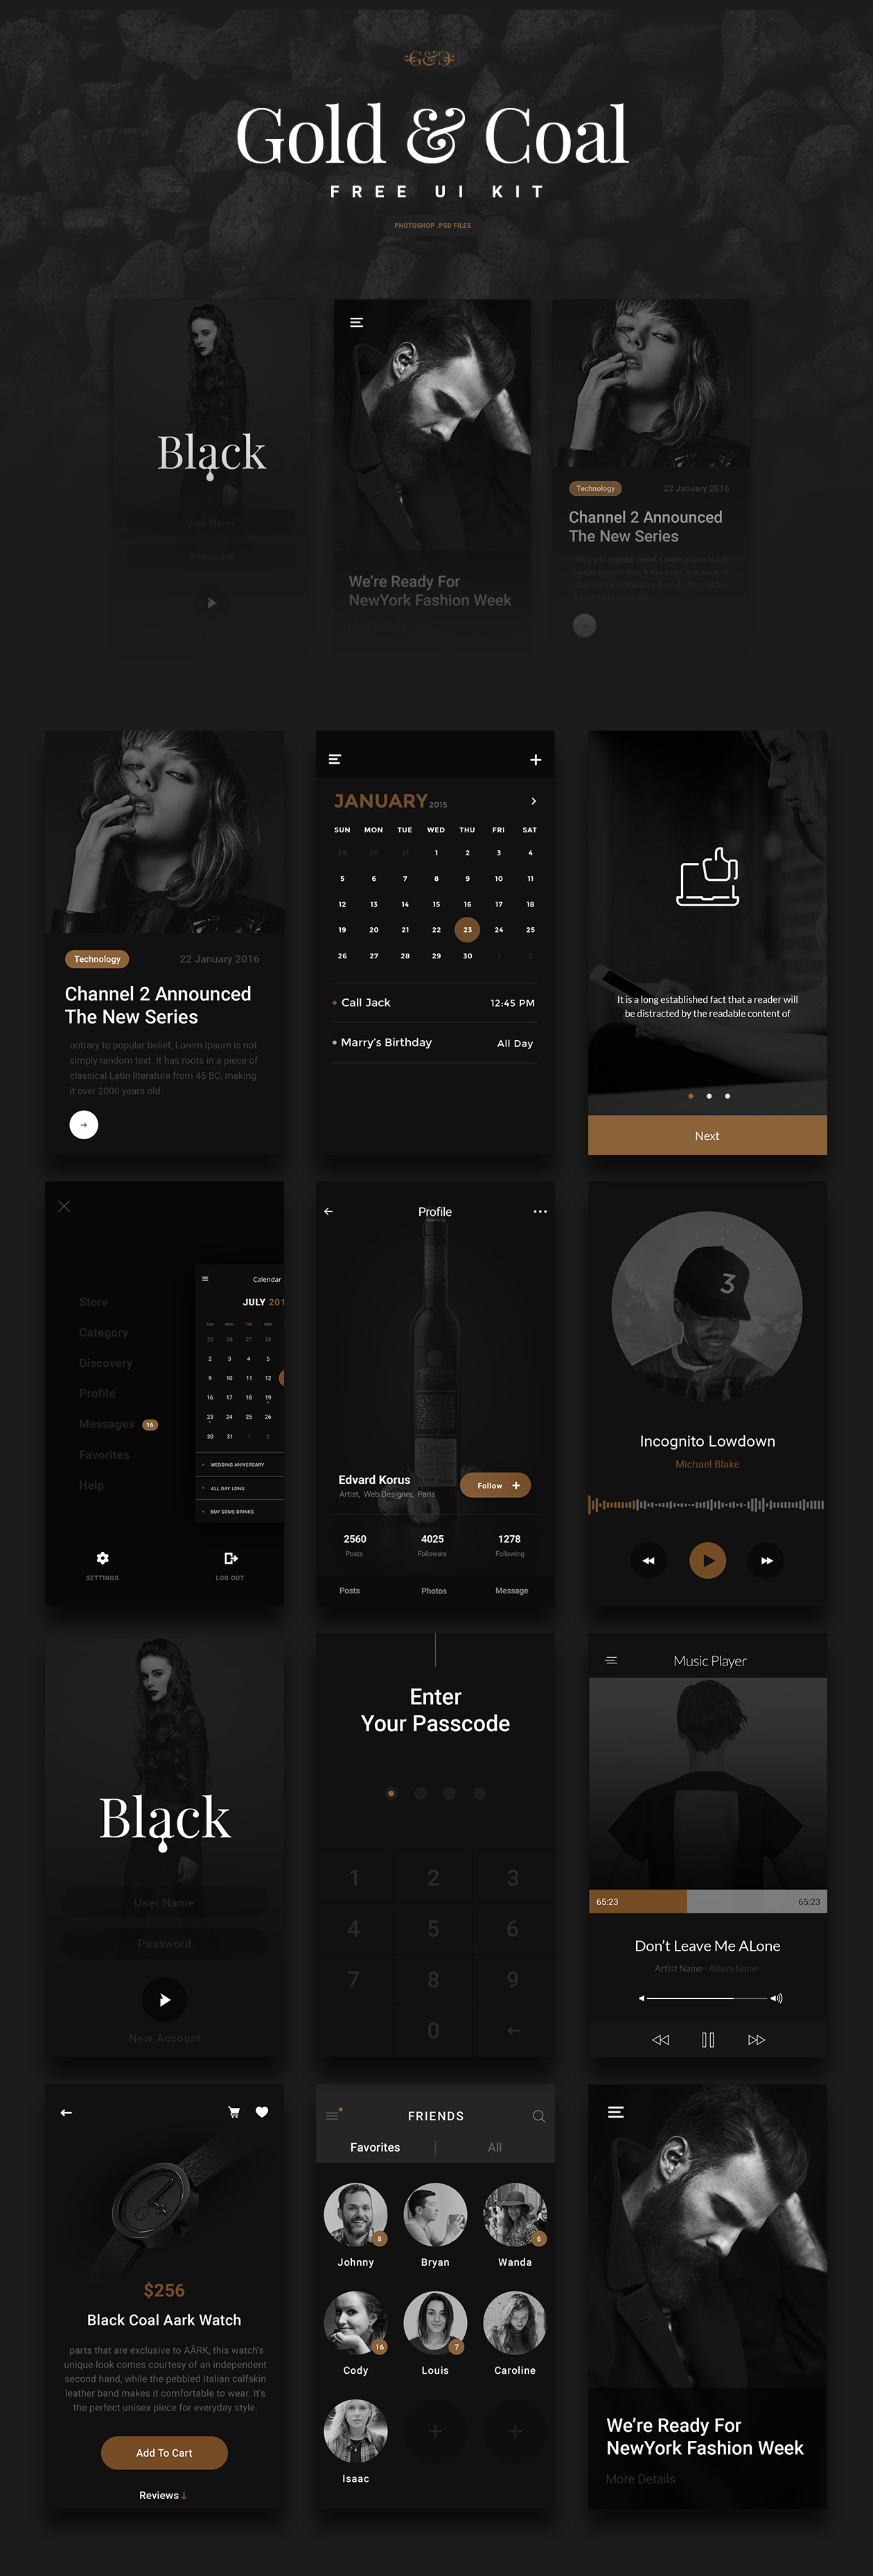 Luxury (Gold & Coal Color) UI Kit - Free Download